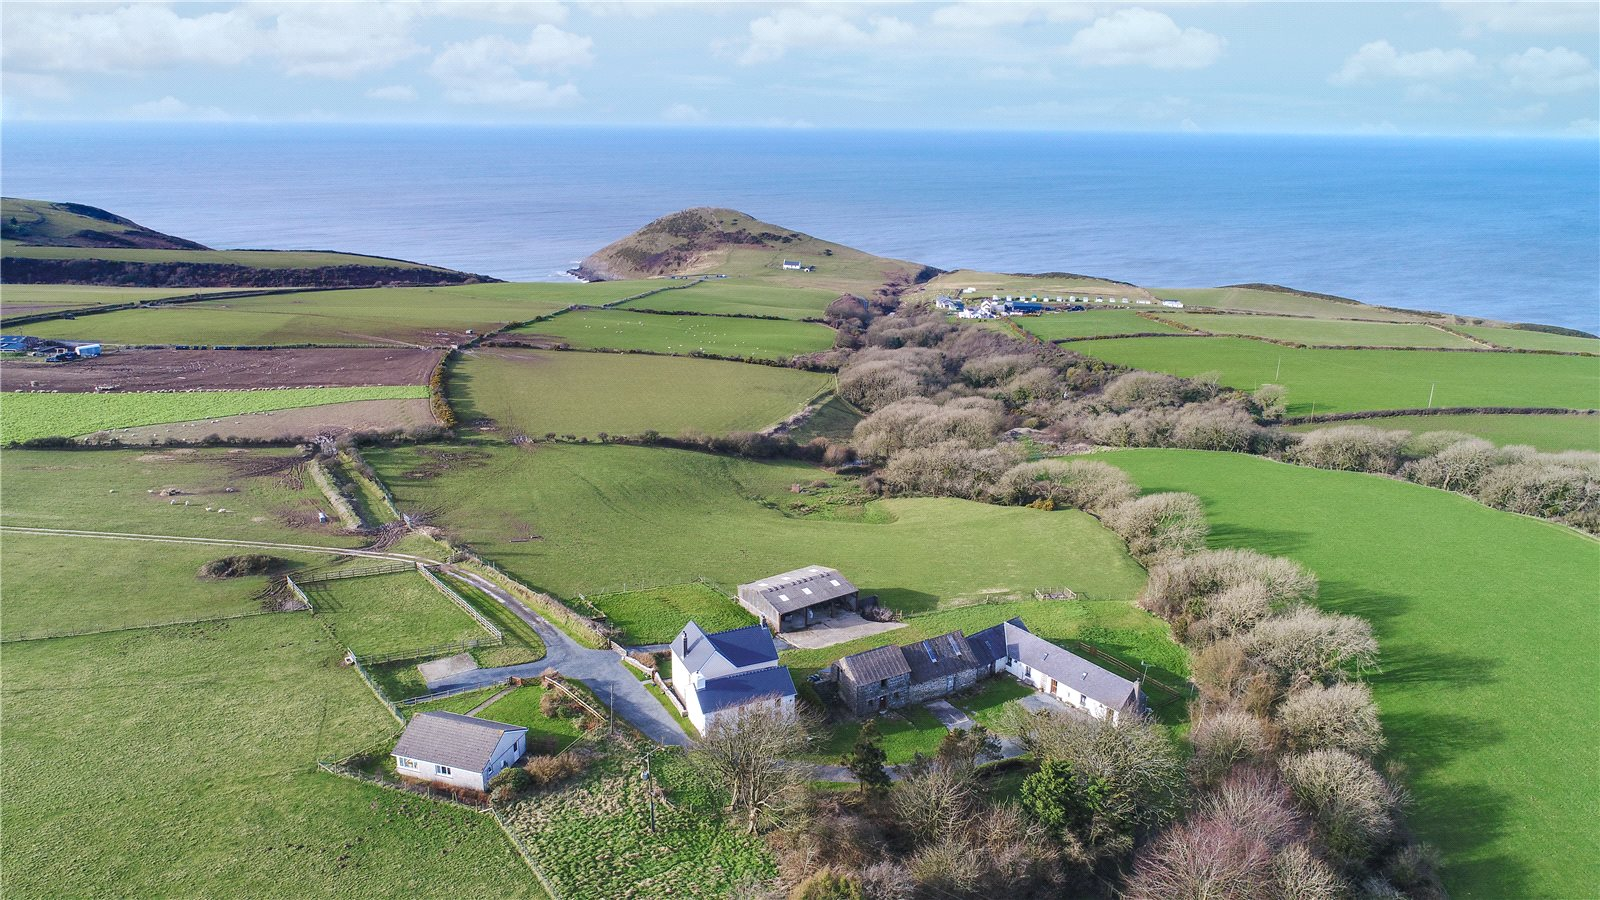 10 Bedrooms Barn Character Property for sale in Ffynnon Grog, Mwnt, Ferwig, Cardigan